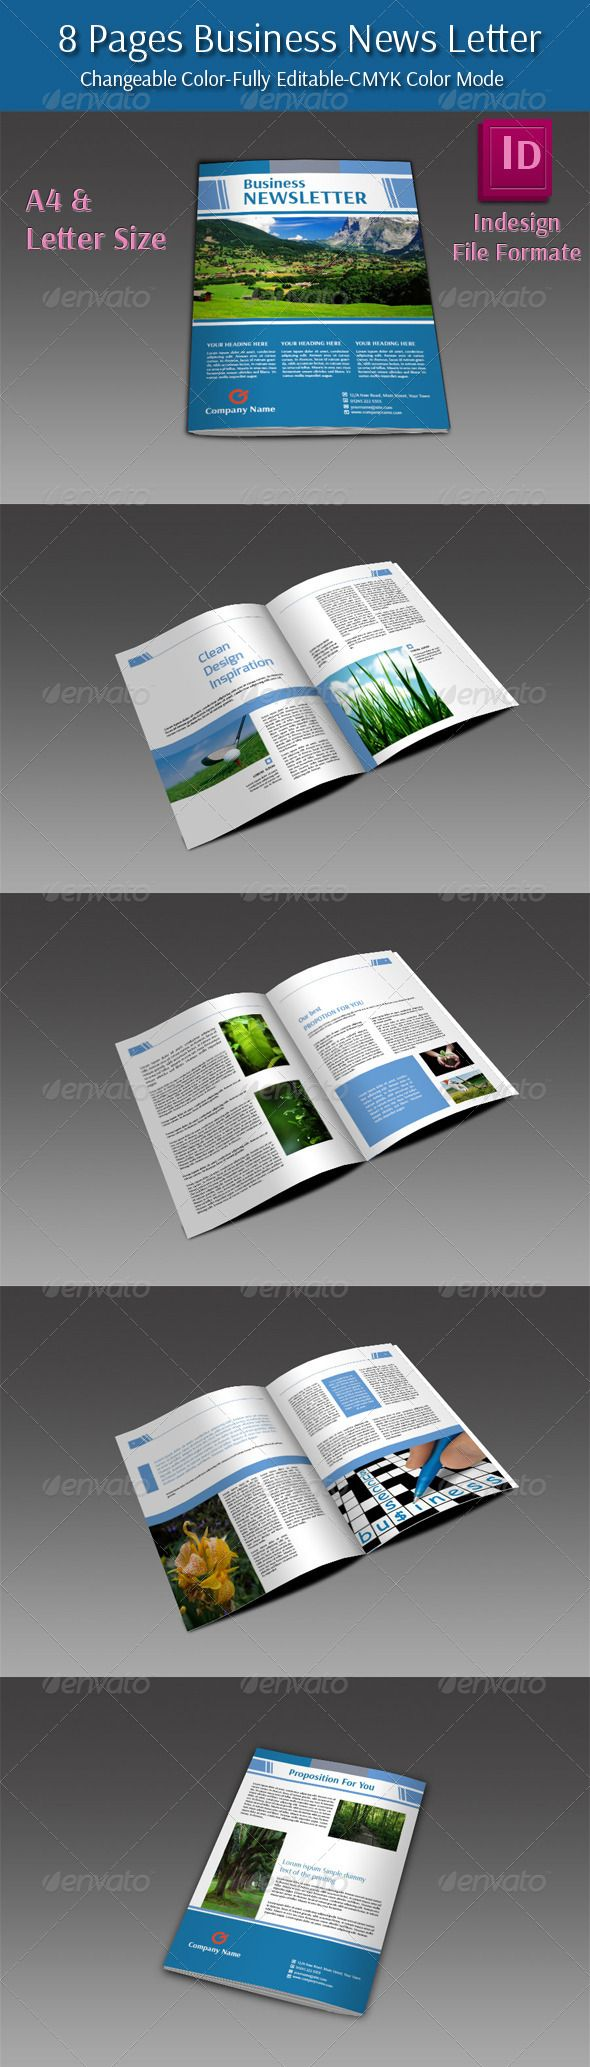 8 Pages Business Newletter - Newsletters Print Templates Download here : https://graphicriver.net/item/8-pages-business-newletter/6088732?s_rank=304&ref=Al-fatih